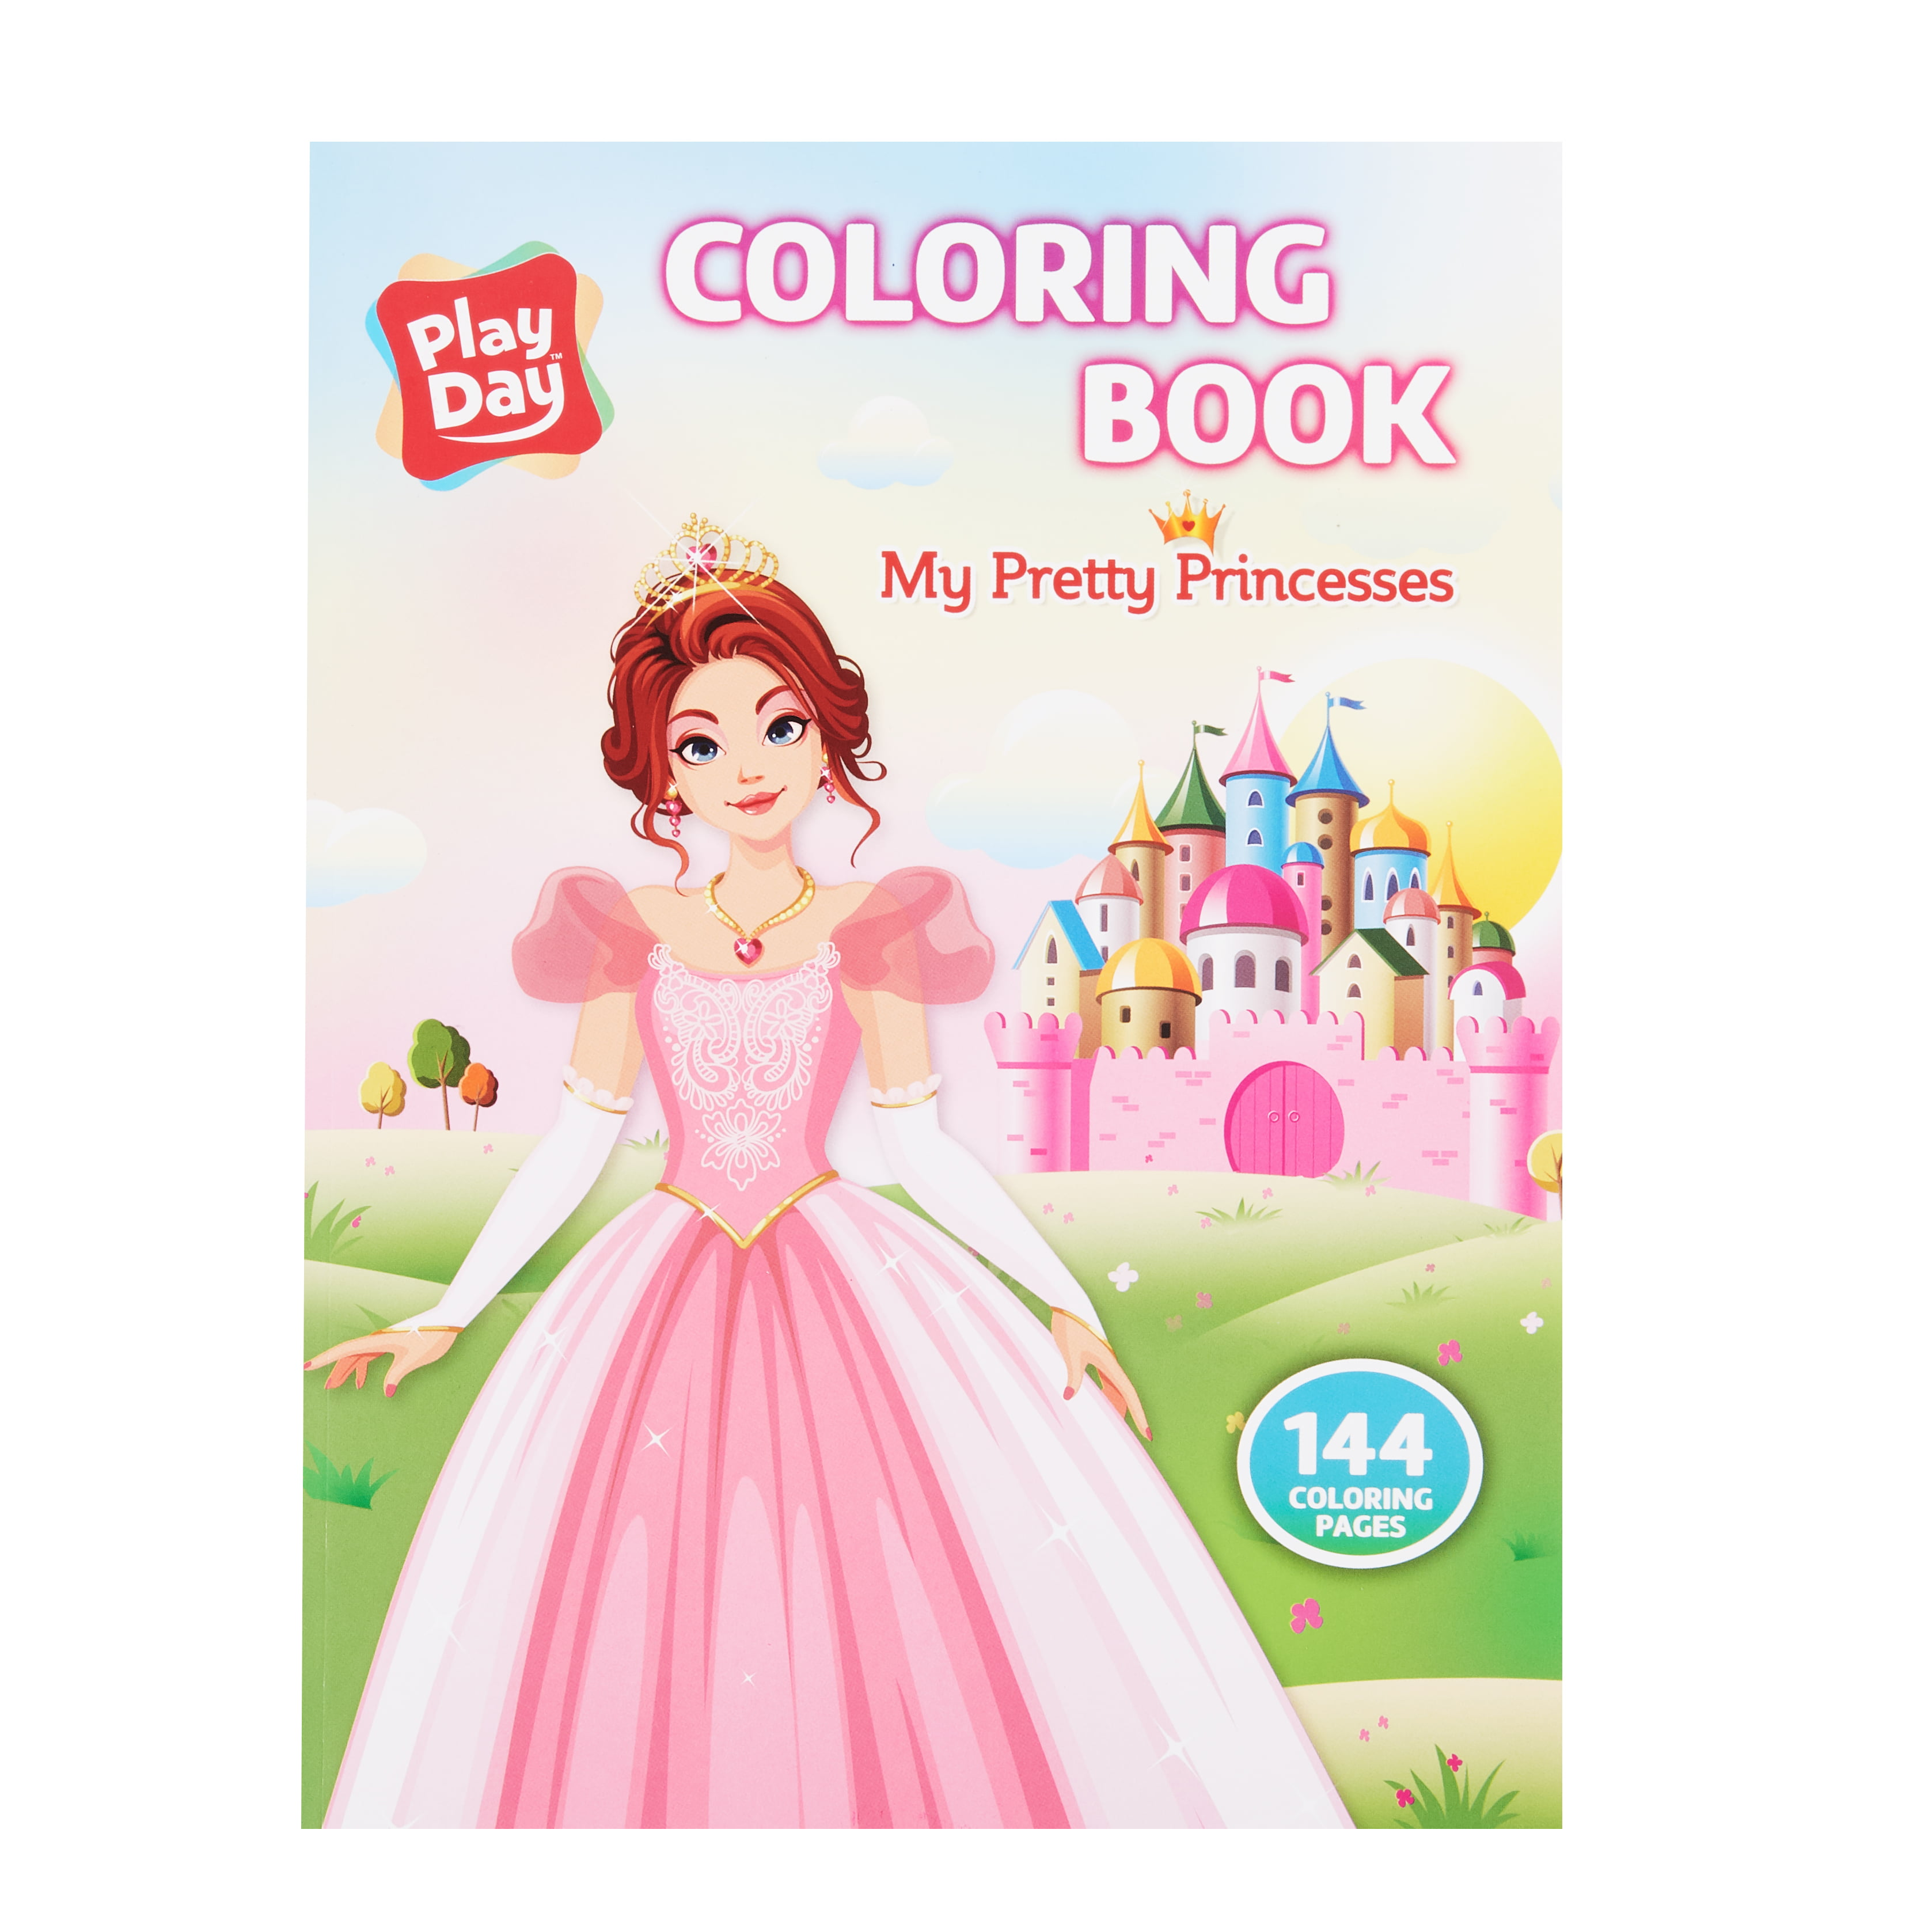 Princess coloring page for girls - Topcoloringpages.net | 3355x3355